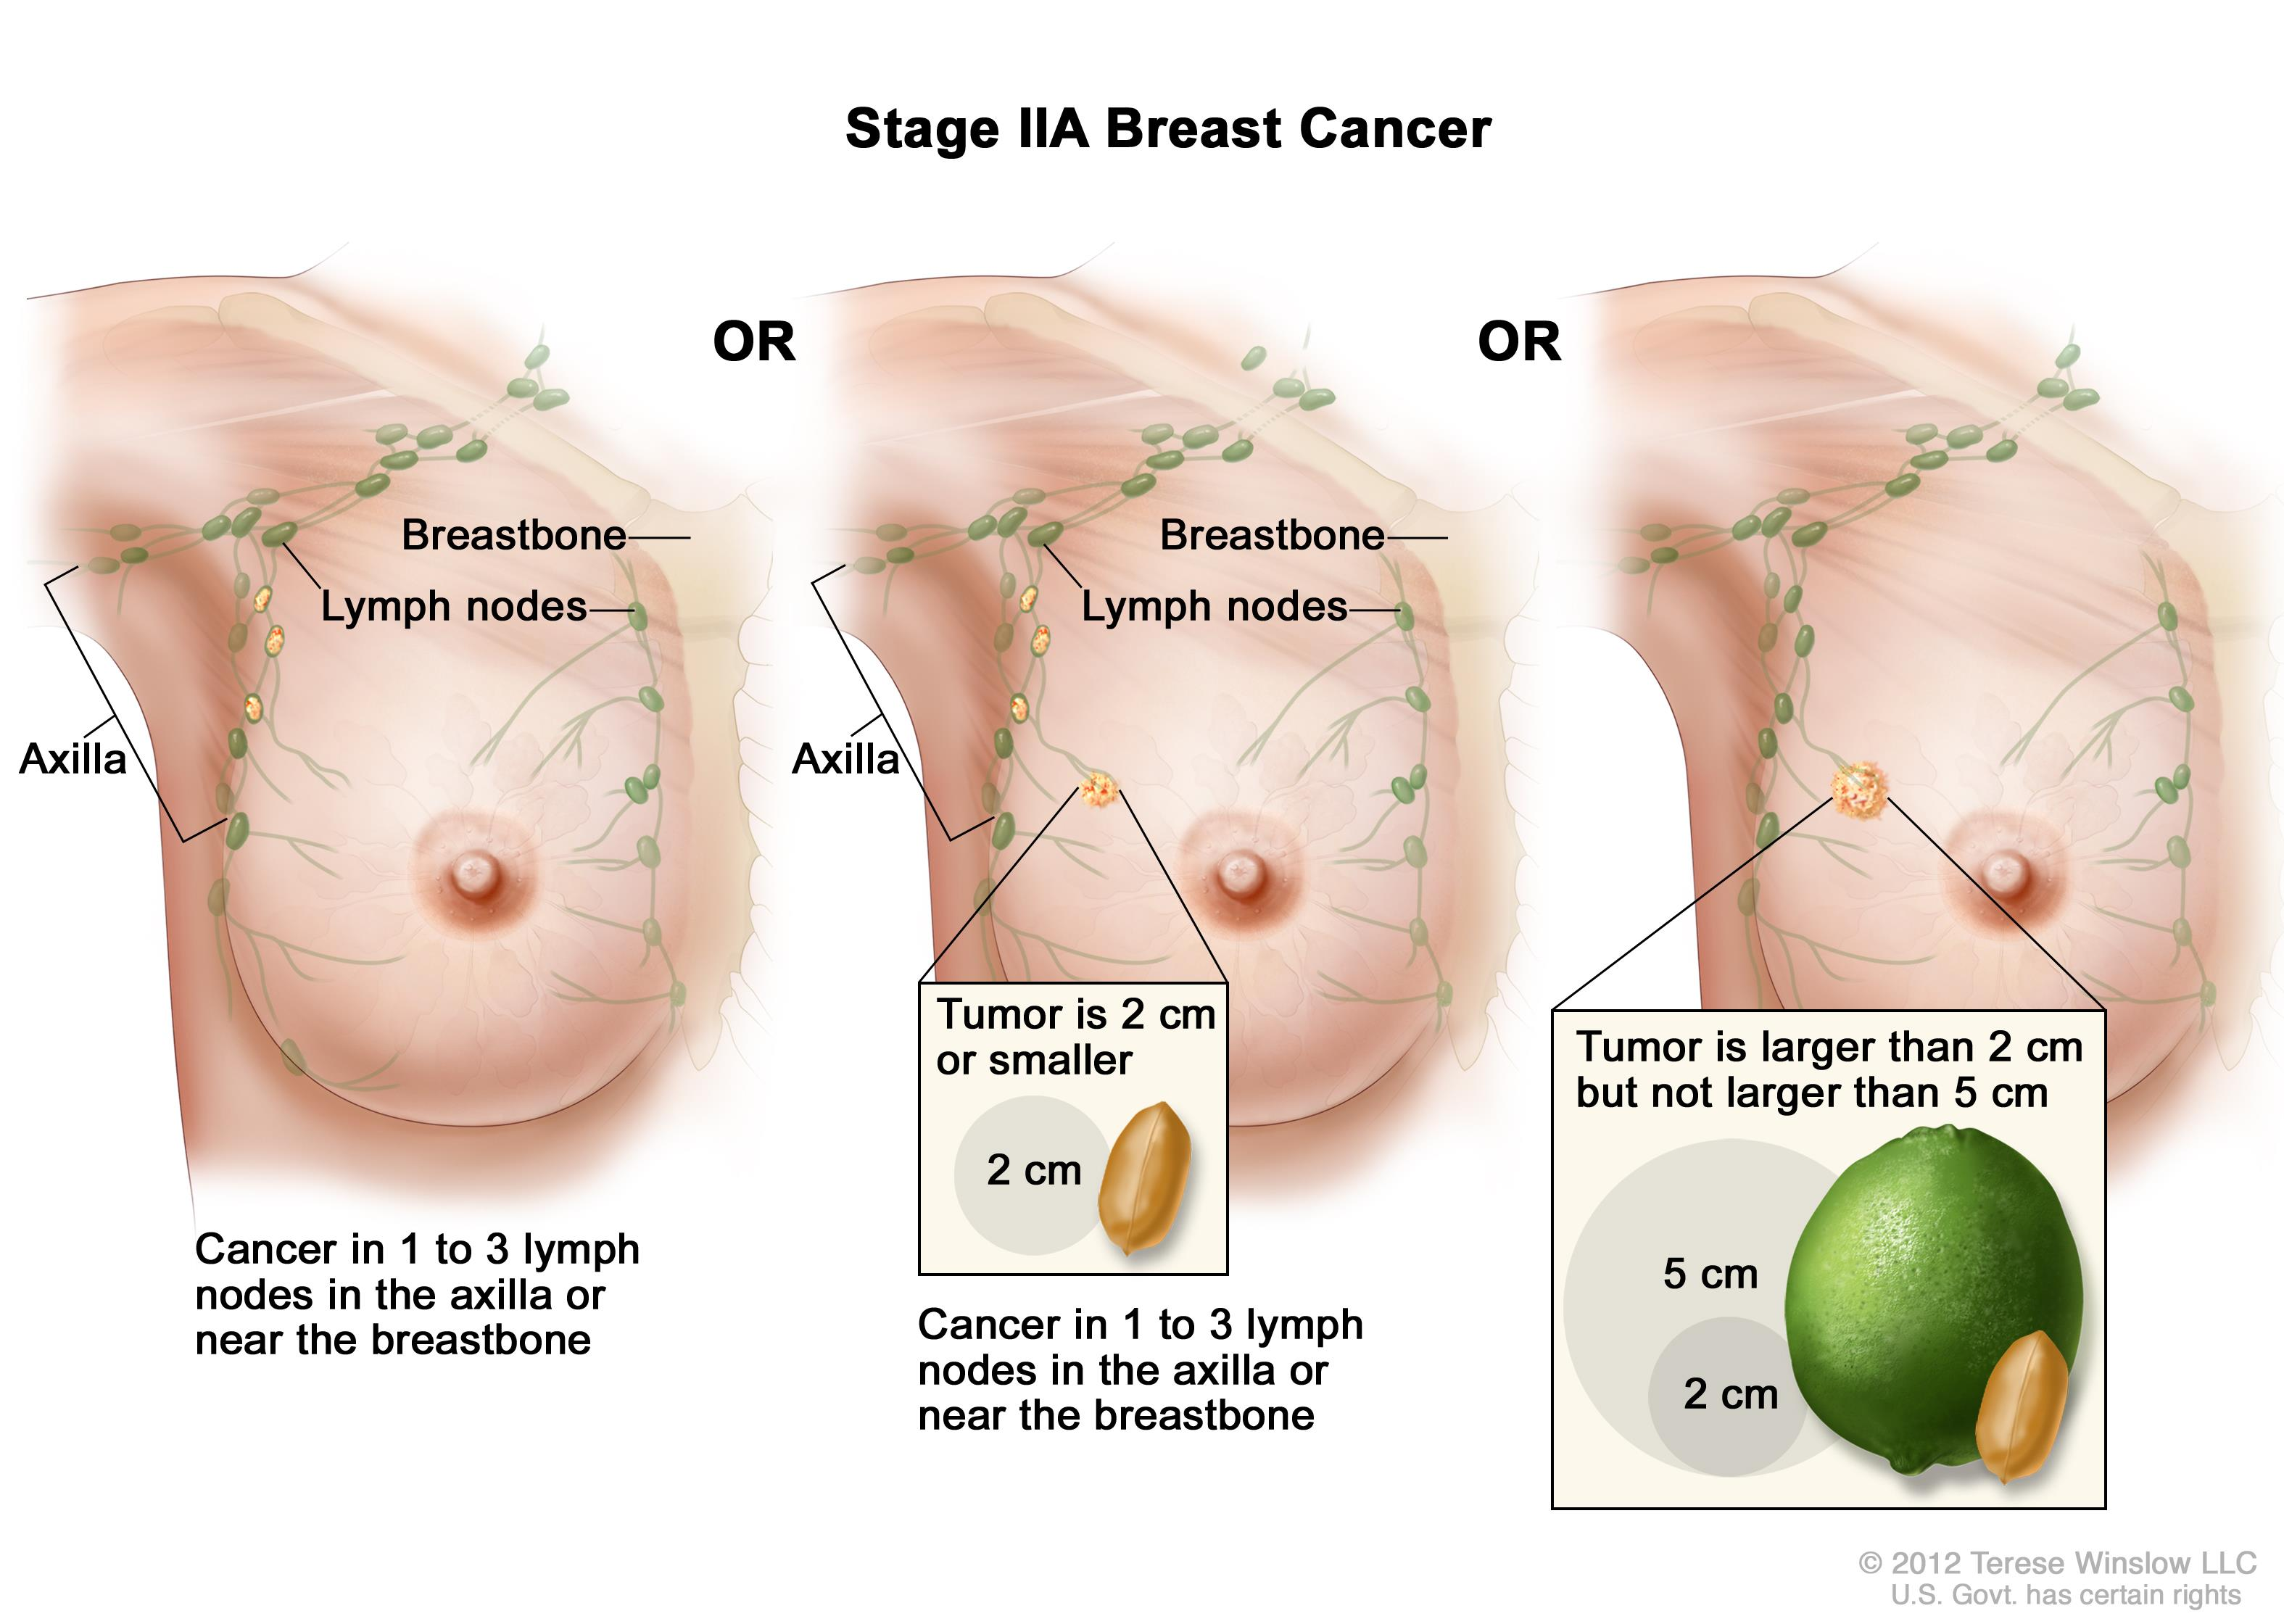 Breast Cancer Survival by stage at Diagnosis - Moose